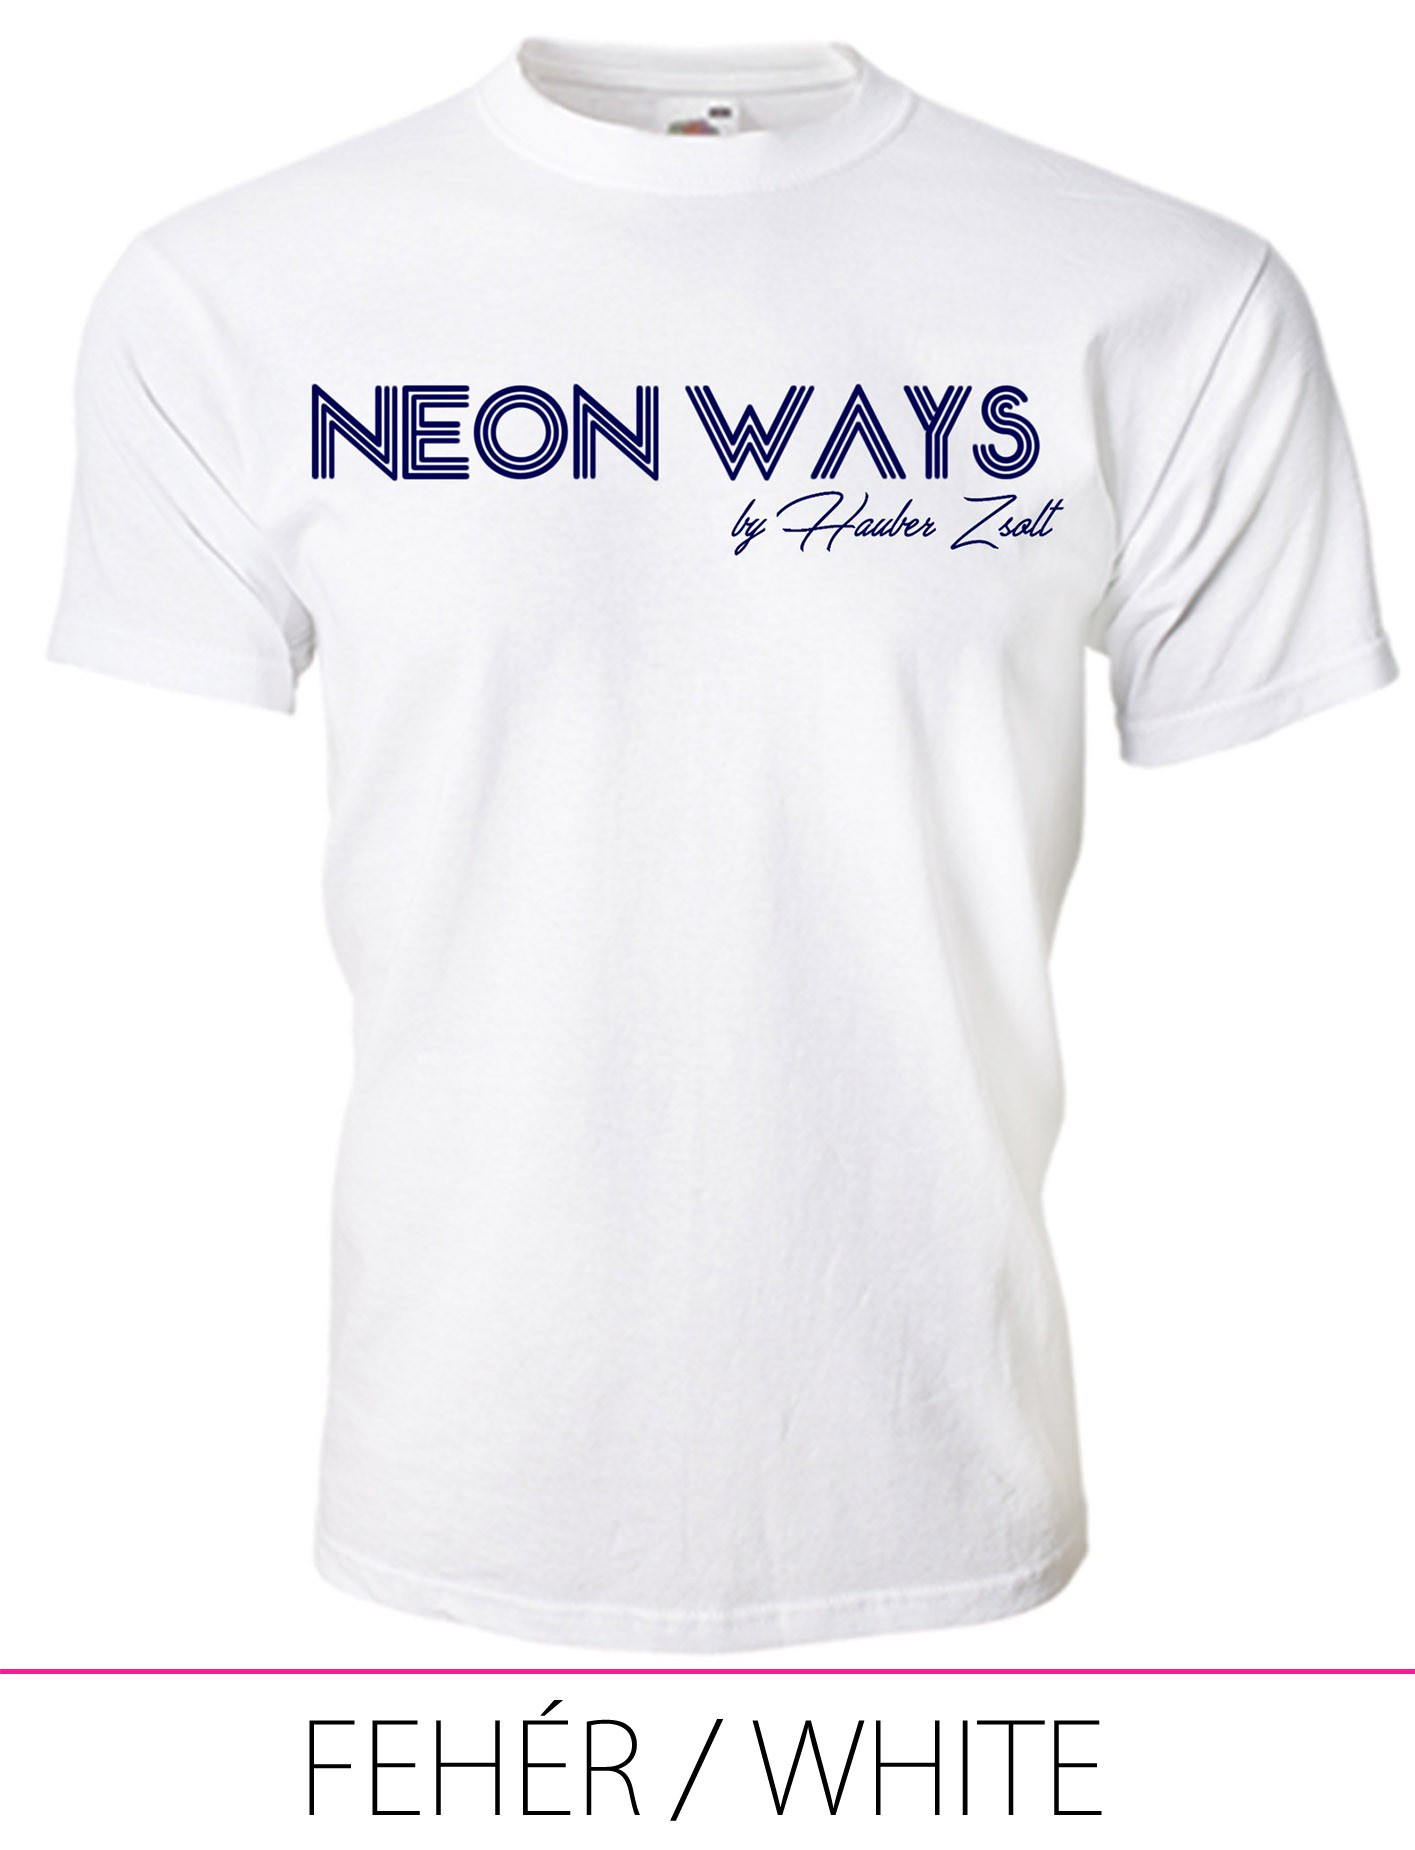 KIDS CREW NECK T-SHIRT NEON WAYS WHITE